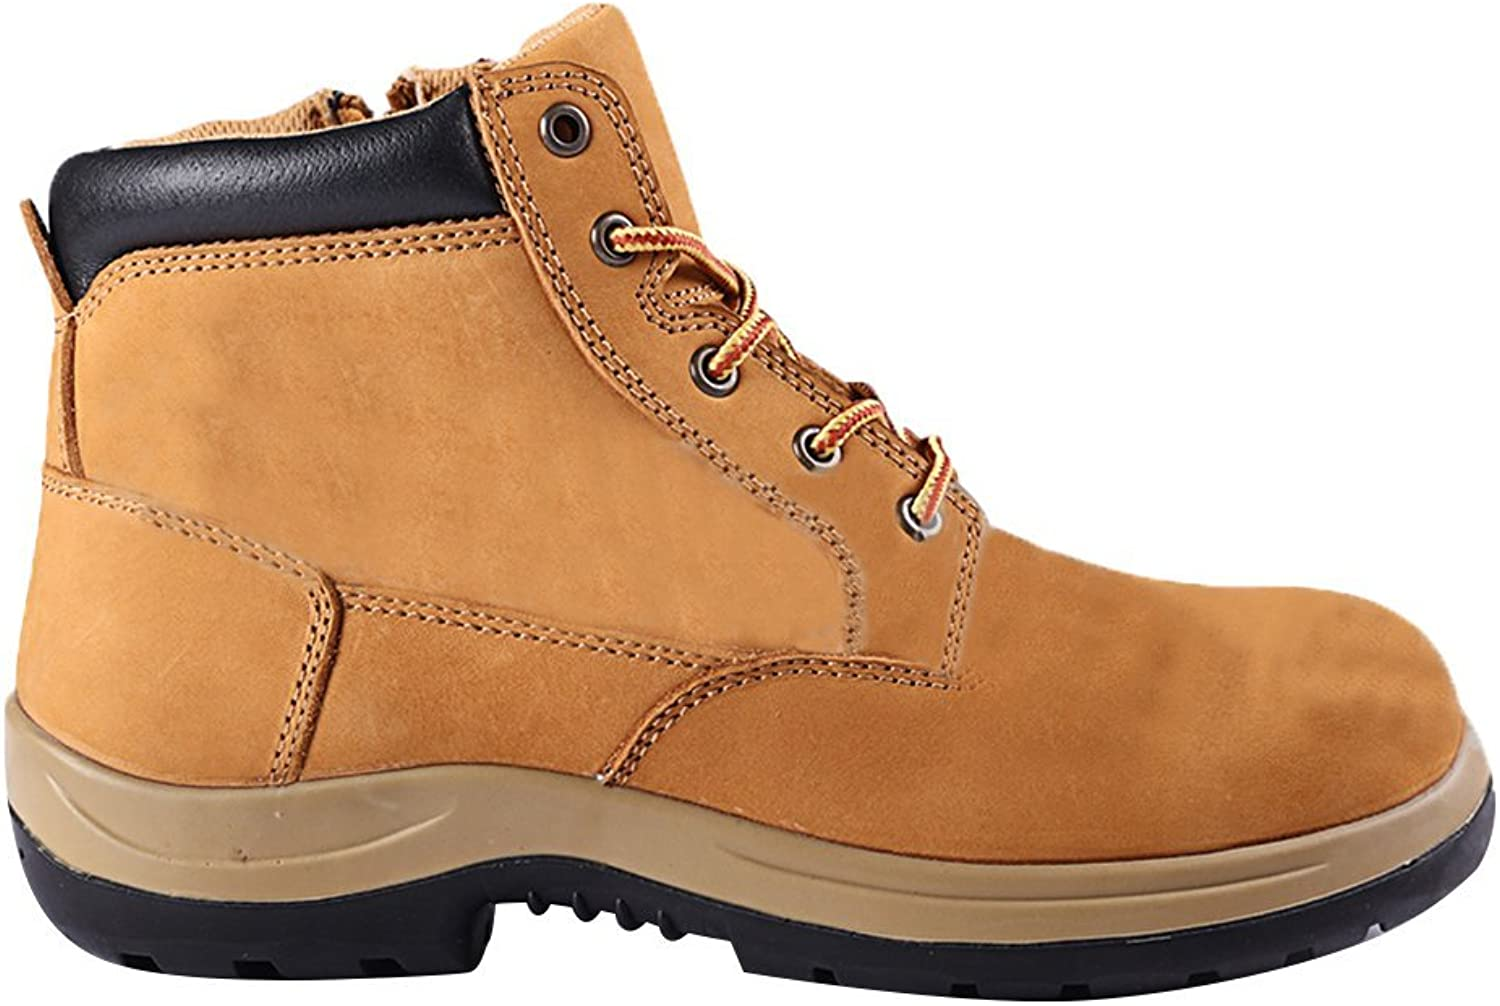 Rock Rooster Men's Unisex Adults' Work Safety Boots Ankle Boots shoes Rubber Sole with Steel Toe Cap Midsole Predection